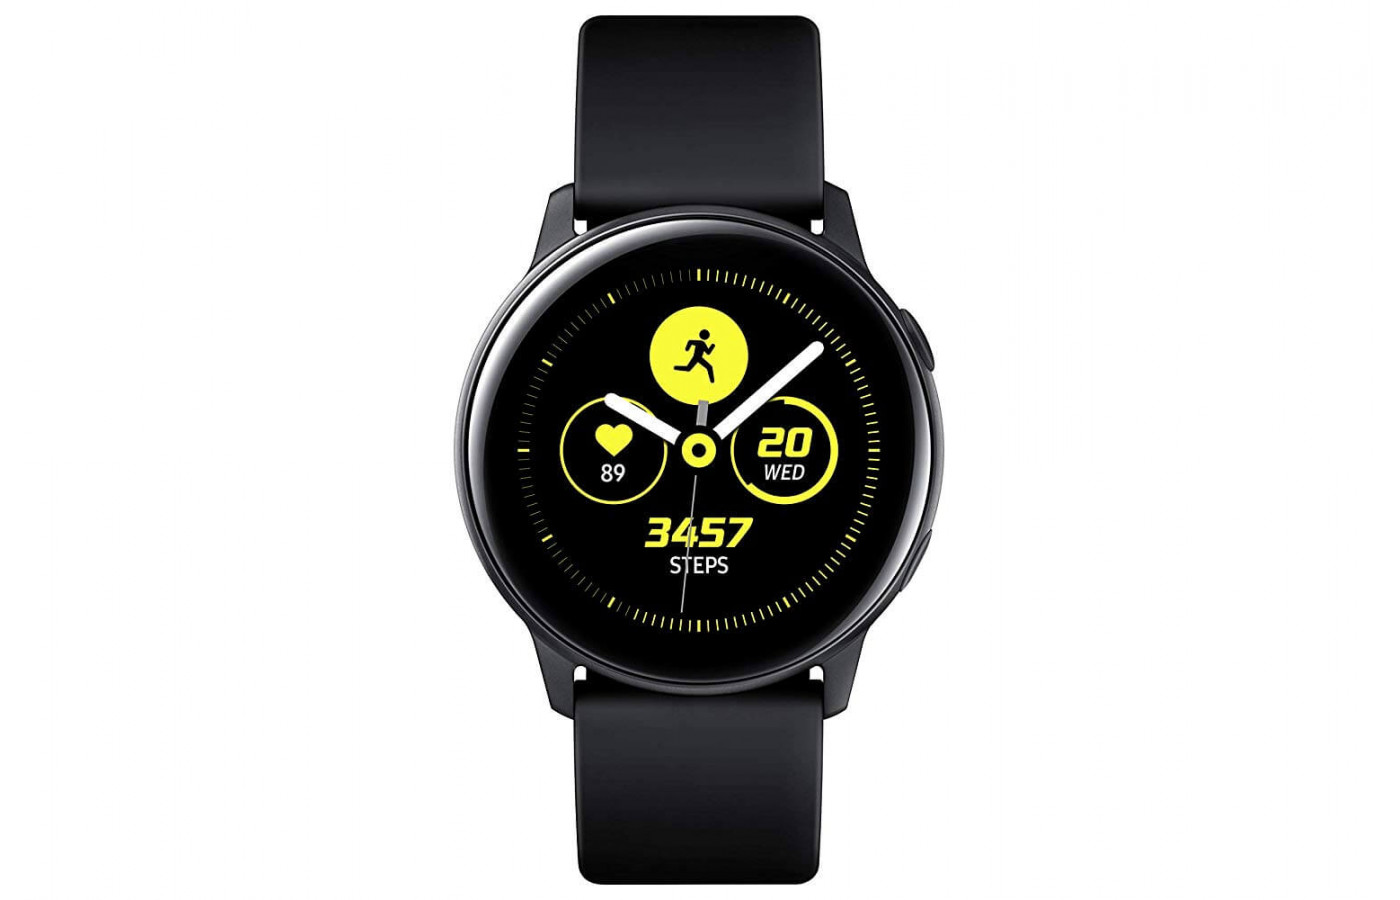 The Galaxy Watch Active is available in four color options.